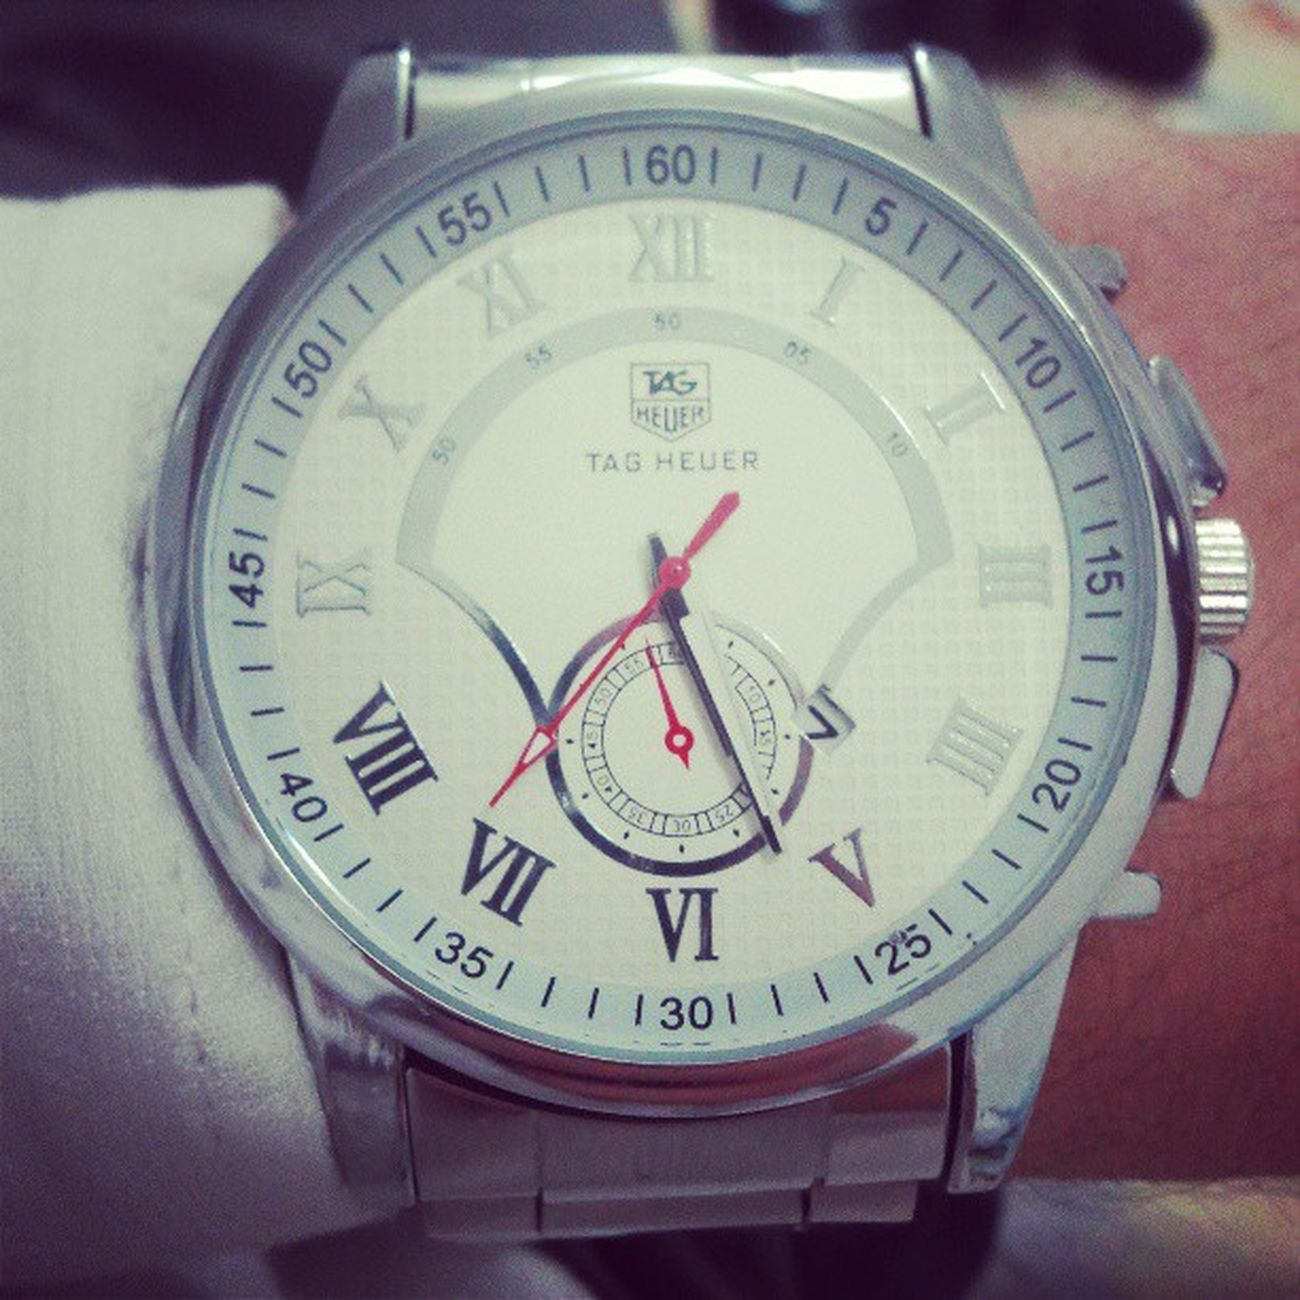 My New Whatc Th tagheuer tag heuer relogio horas coleçao likeforlike l4l followme